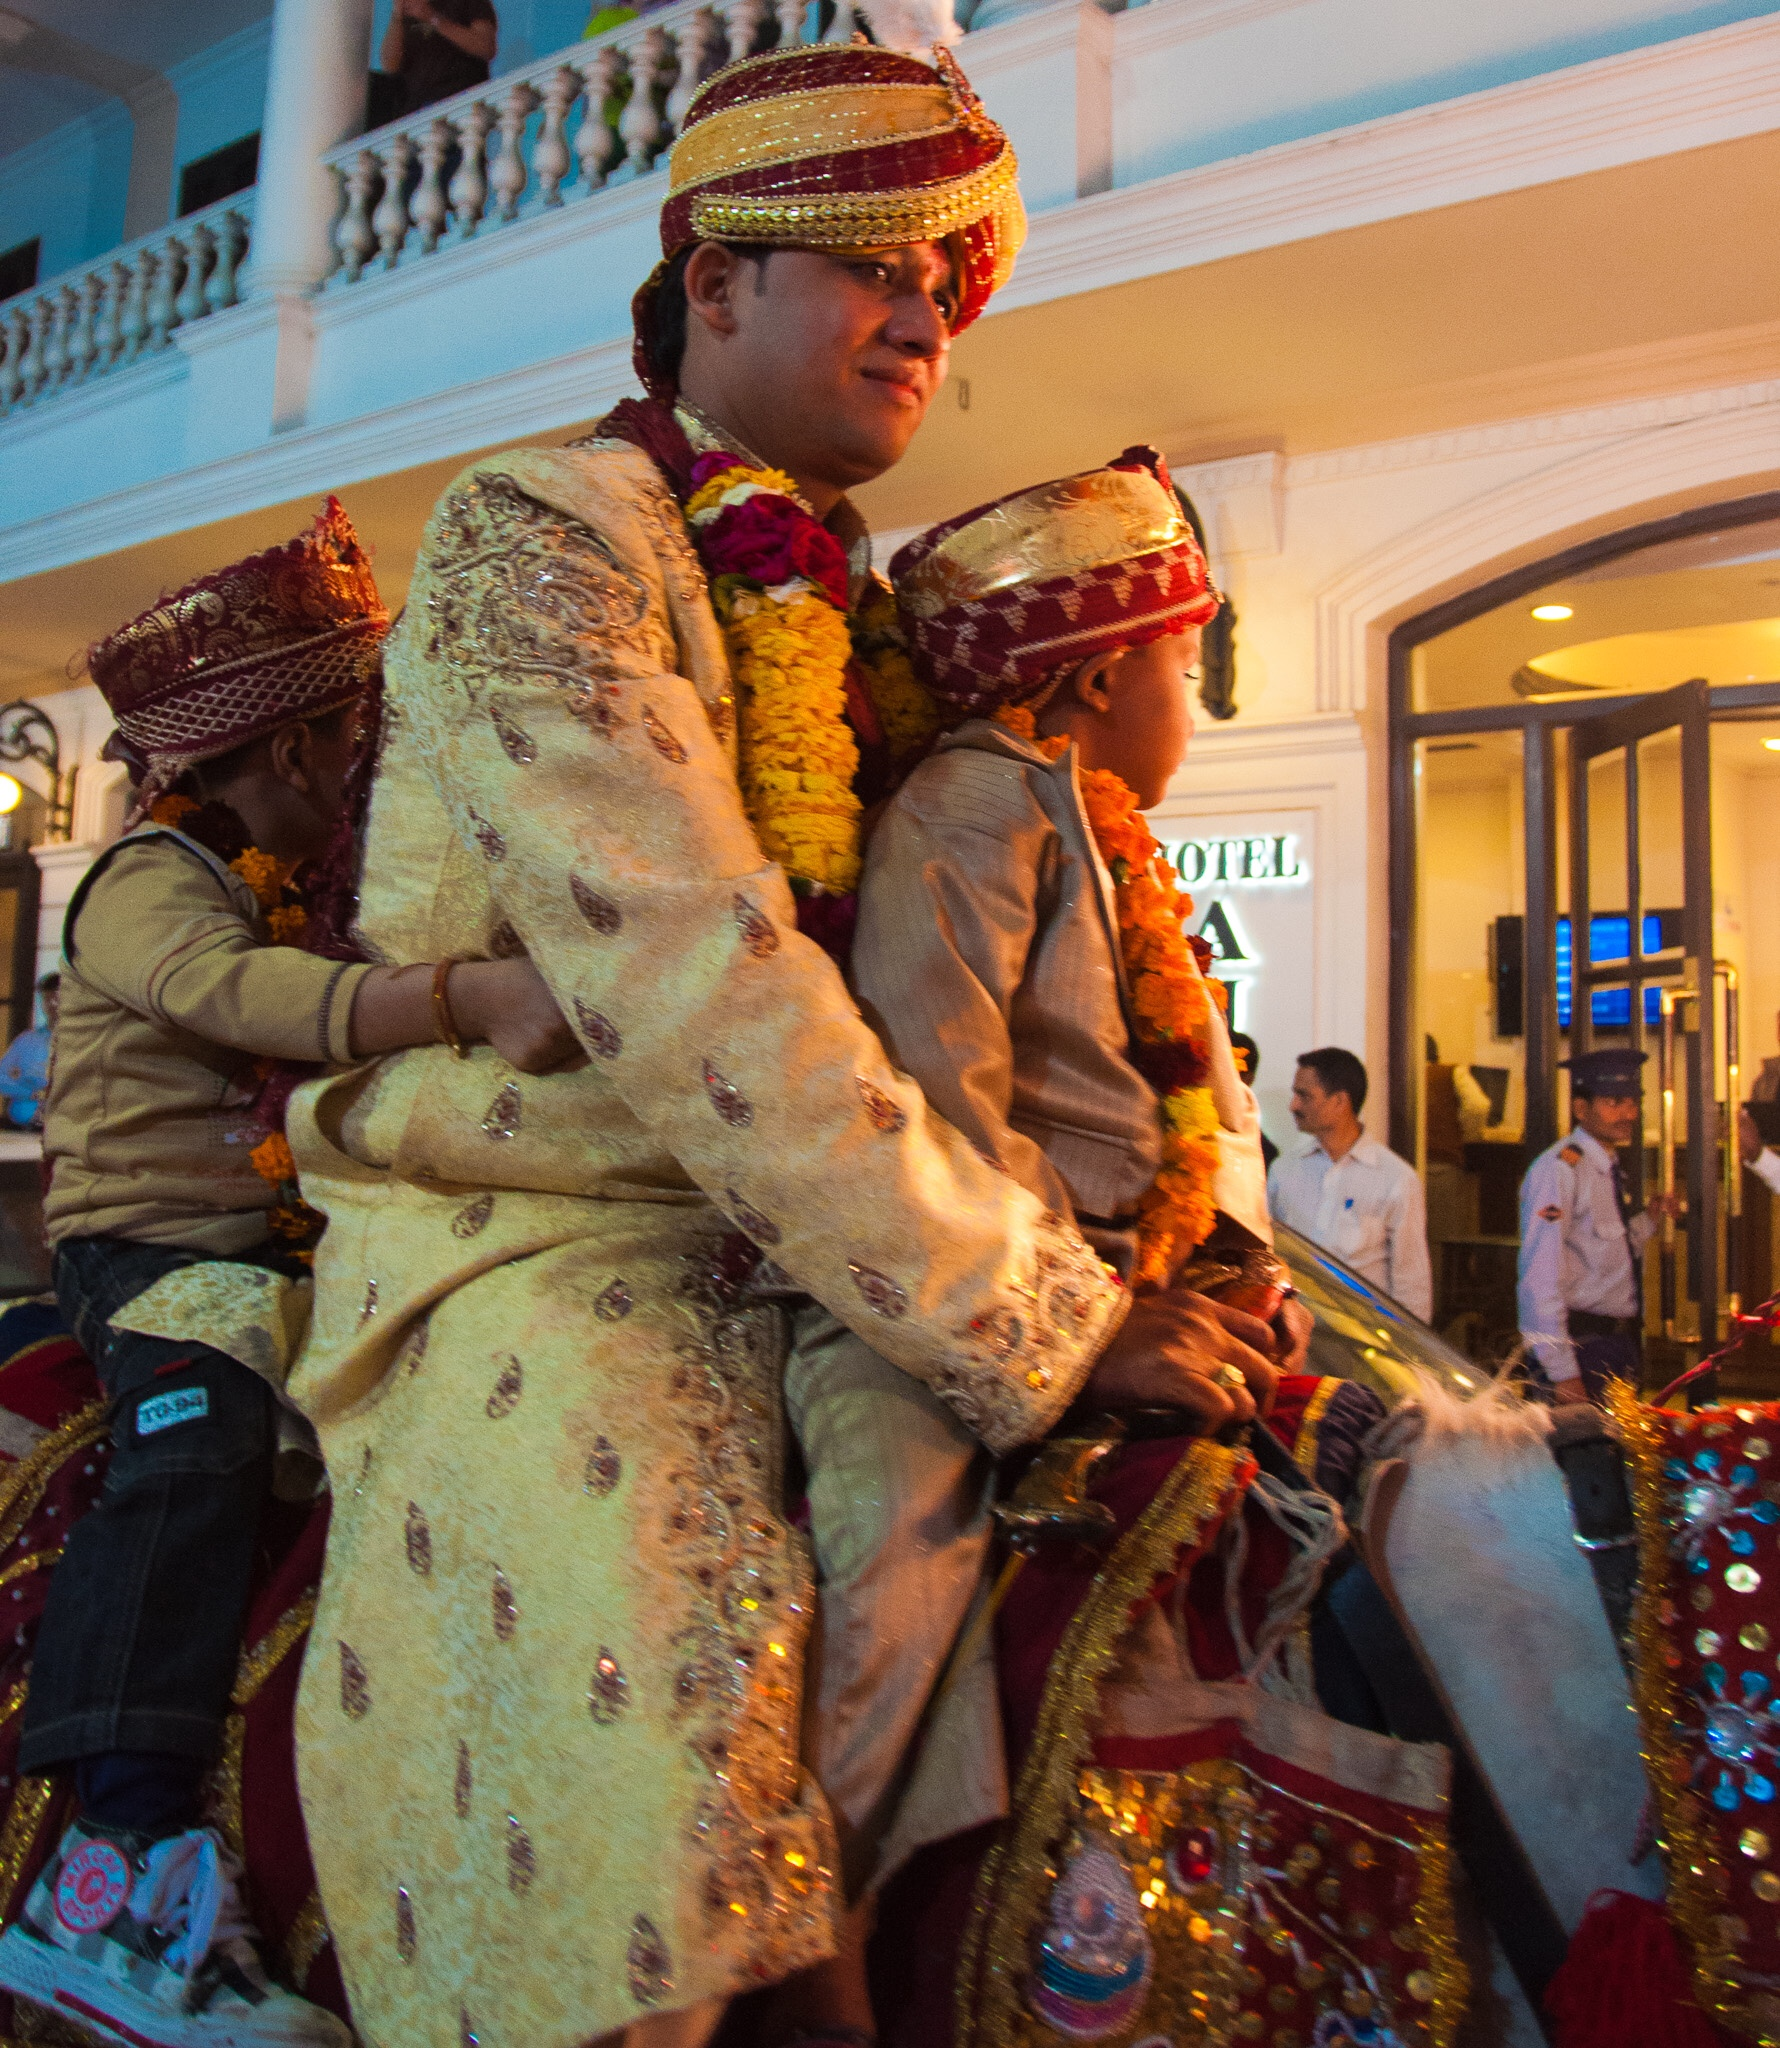 Wedding procession, New Delhi, India, 2011